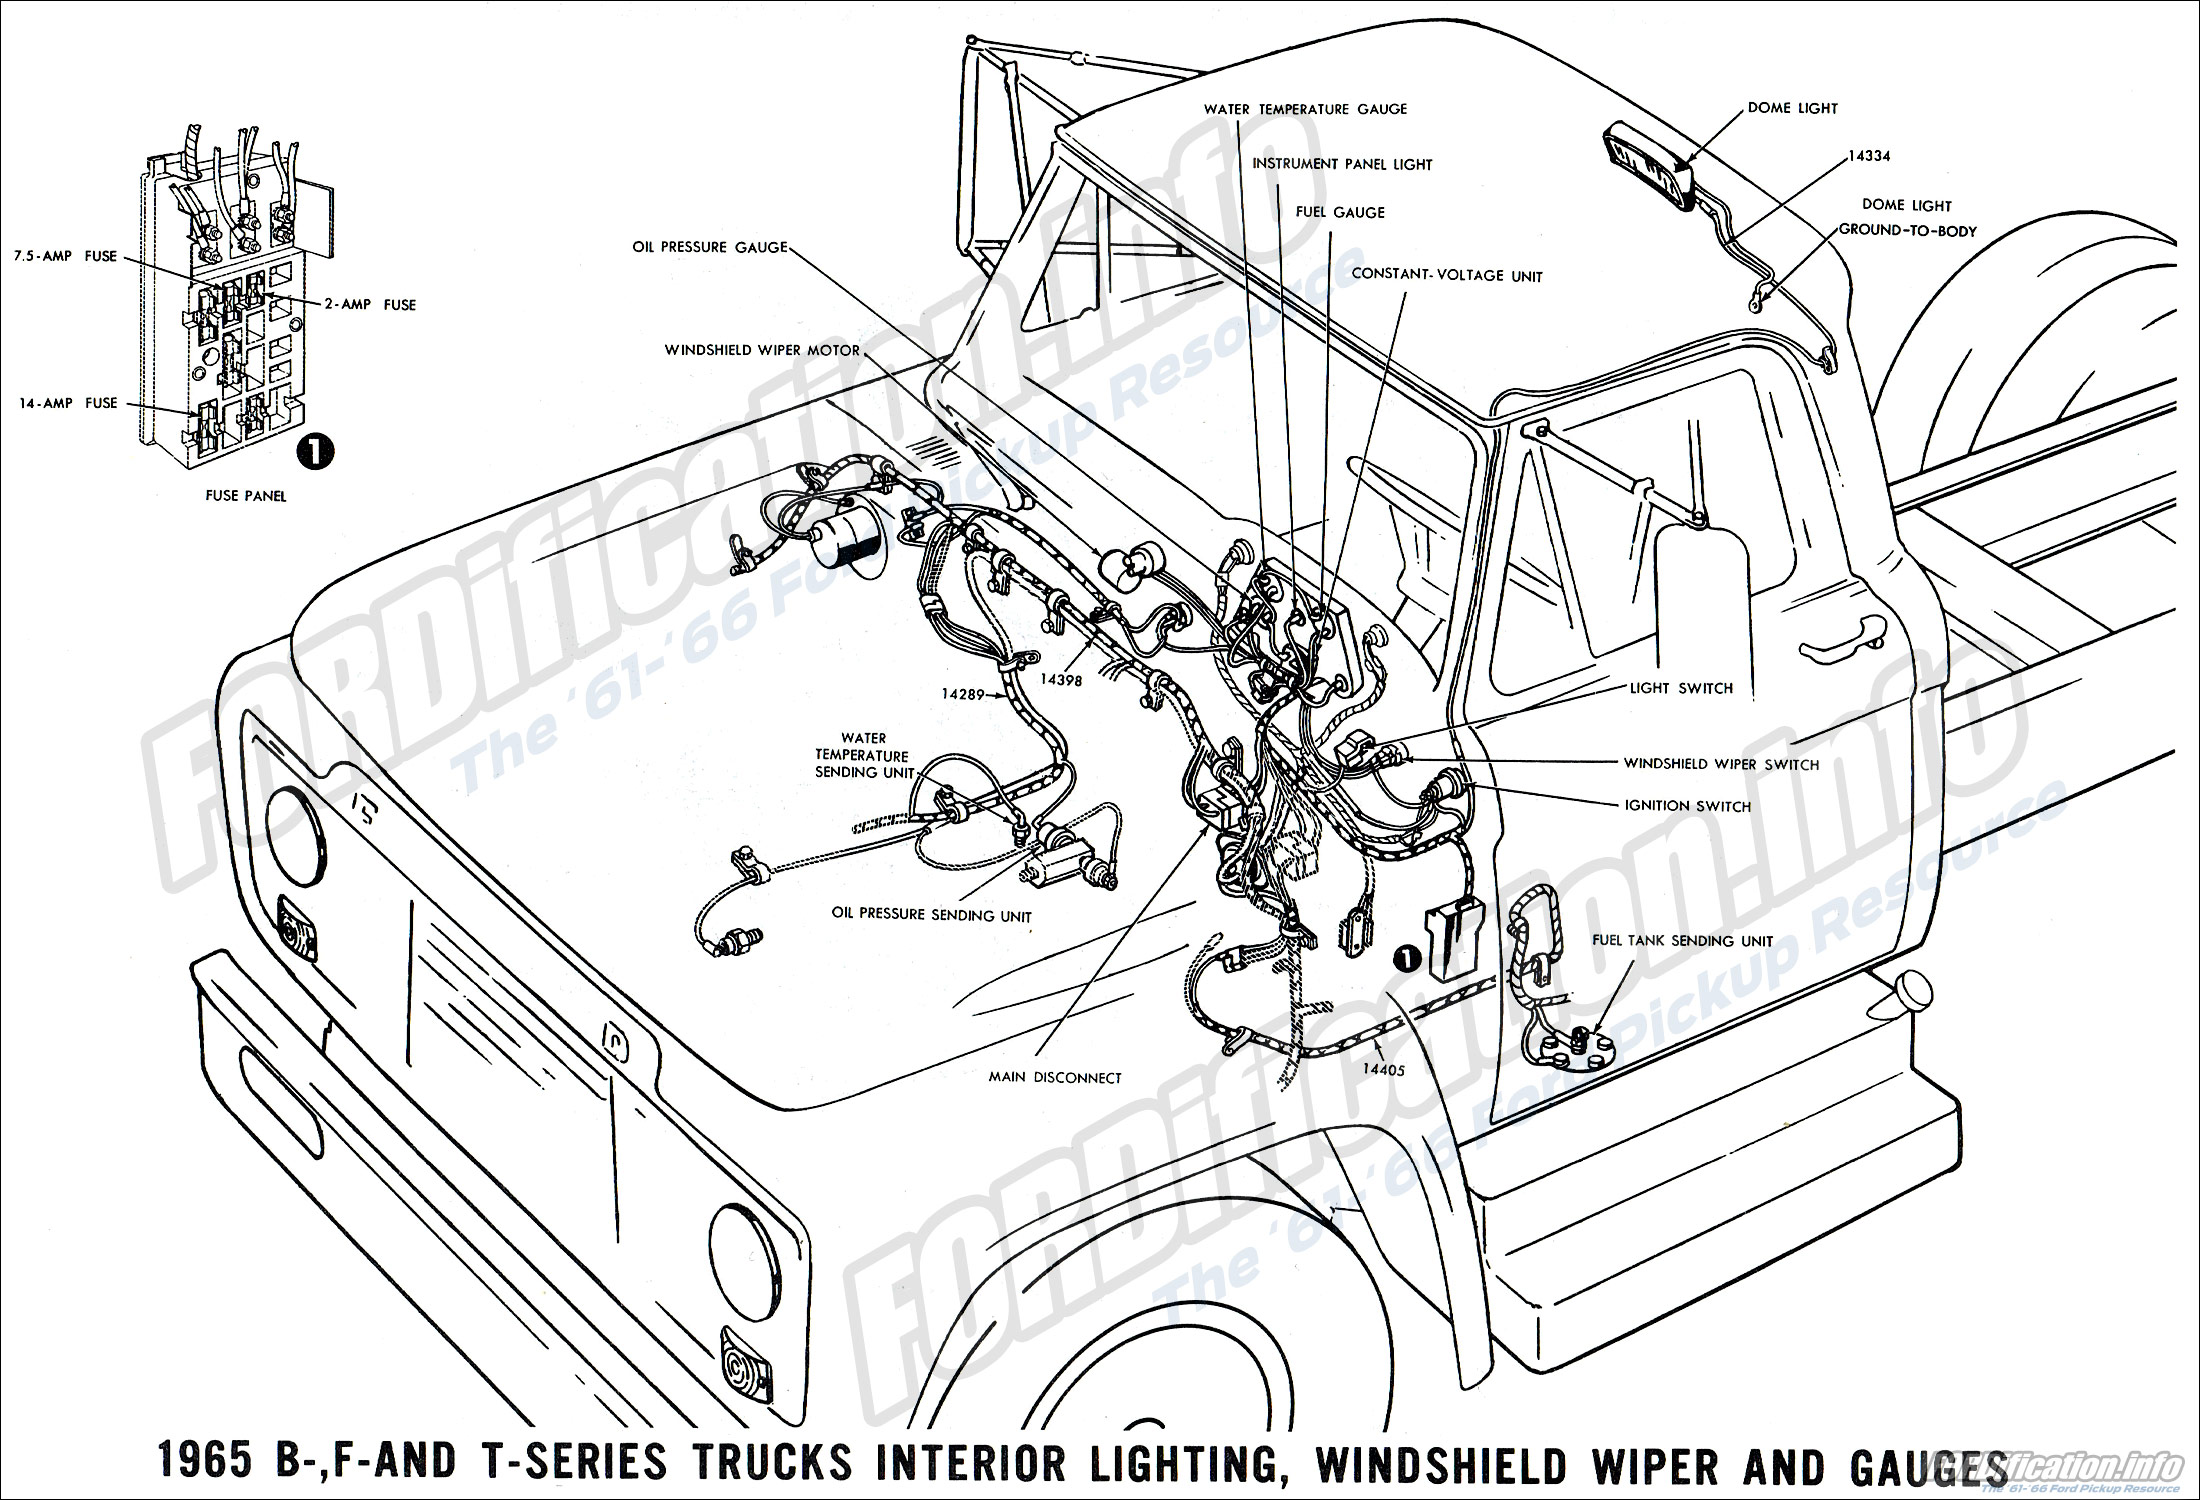 Pickup Truck Diagram Electrical Schematics Tesla Wiring Diagrams 1965 Ford Fordification Info The 61 66 Drawings